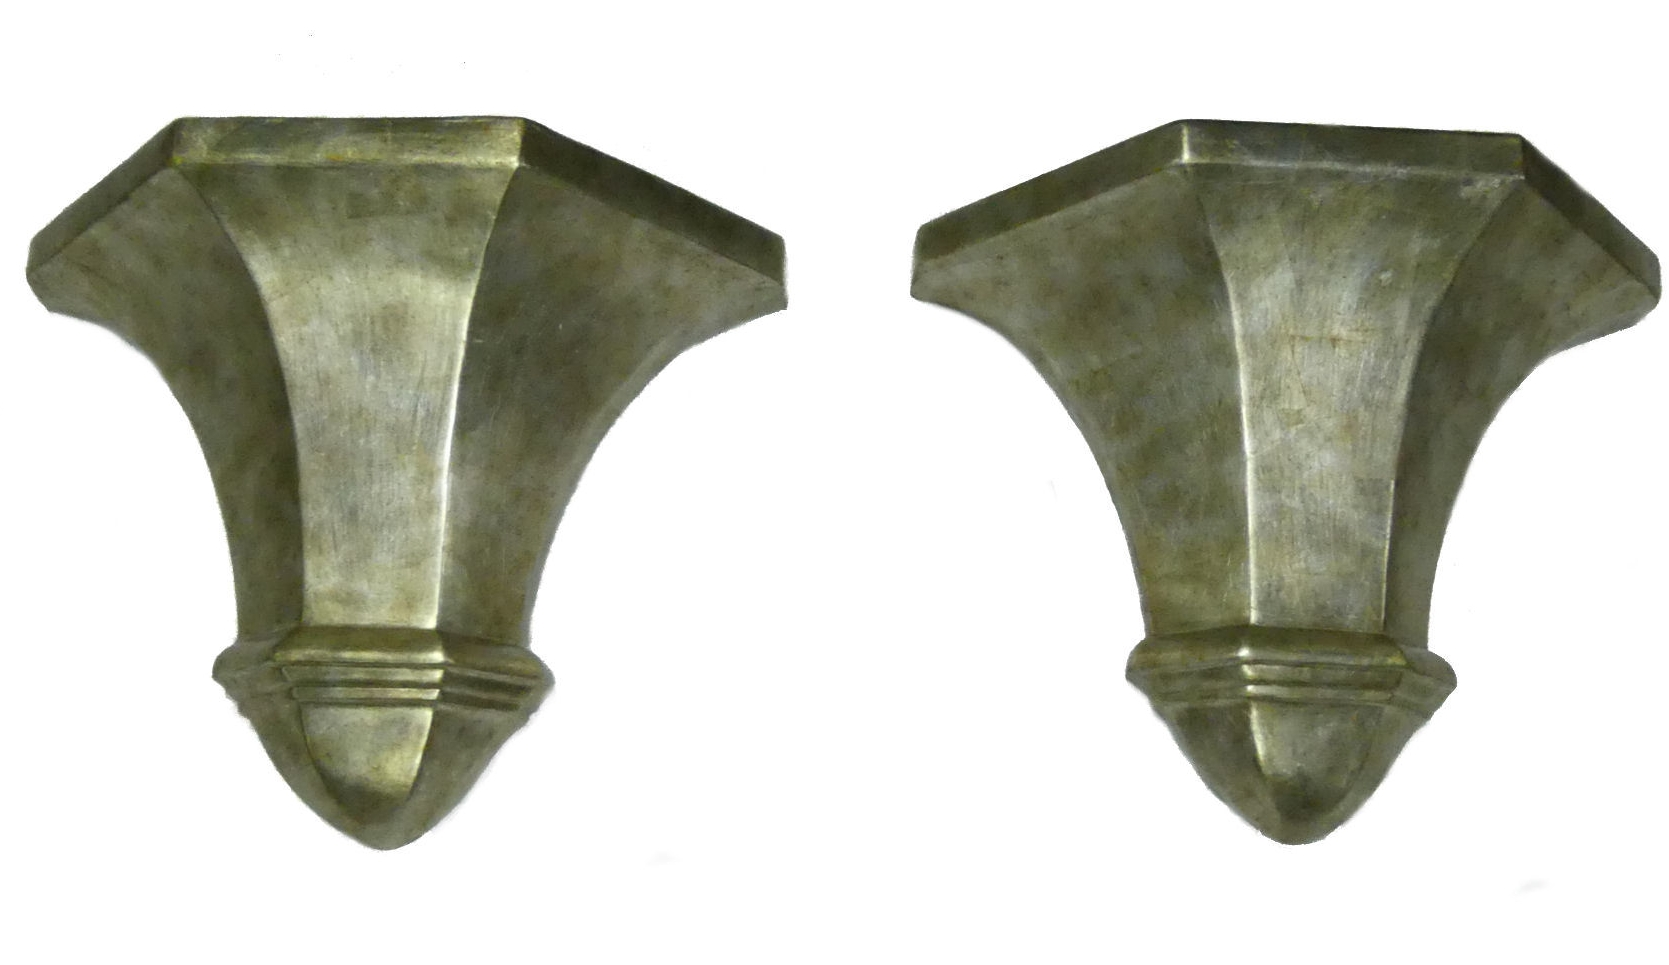 Pair of Decorative Silver Leaf Wall Sconces